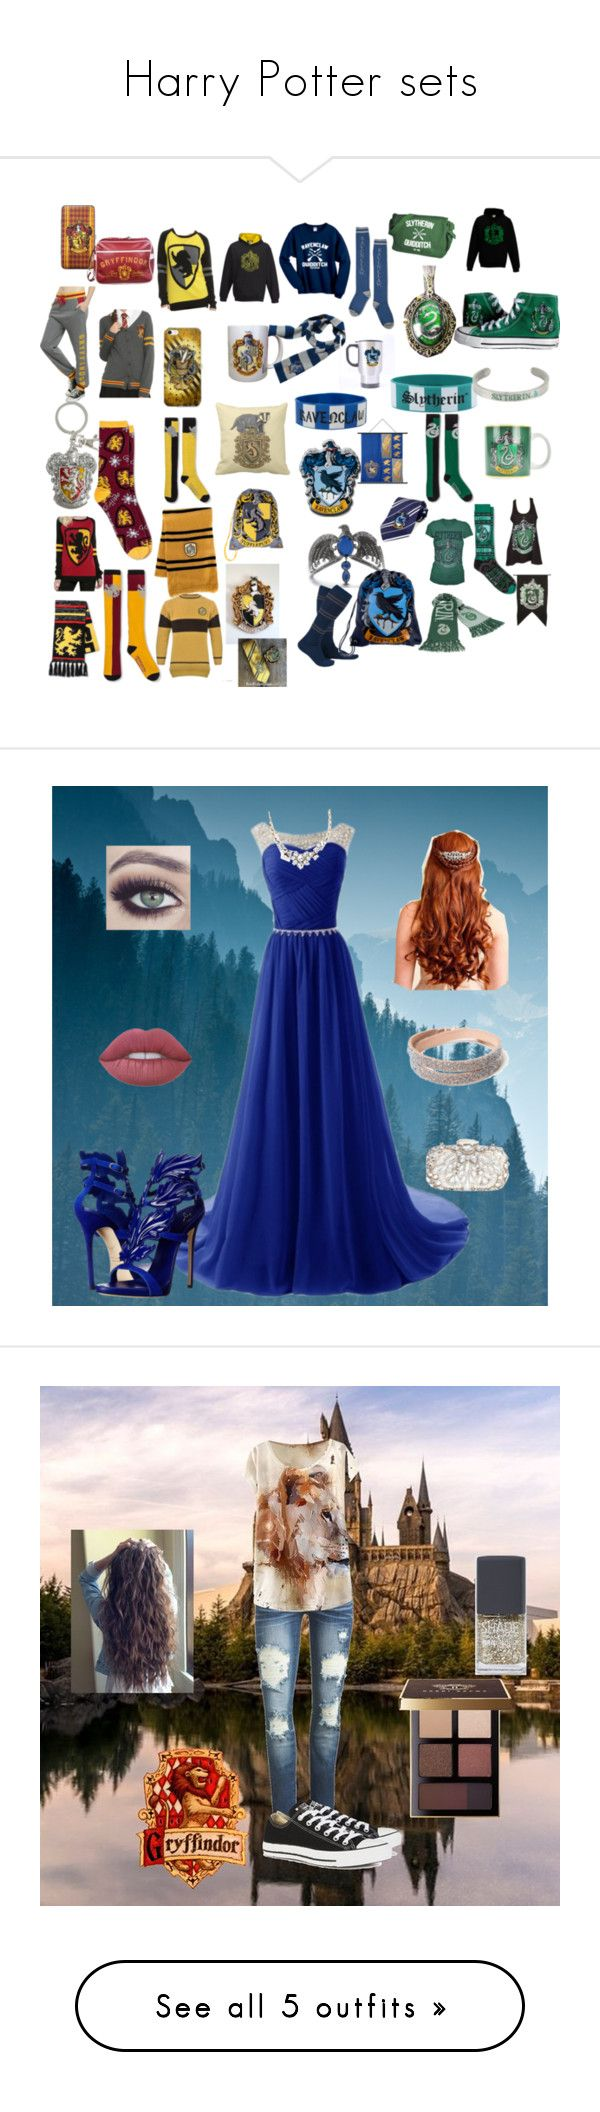 337 best images about harry and ginny on pinterest harry birthday -  Harry Potter Sets By Pentatonixfan24 Liked On Polyvore Featuring Warner Bros